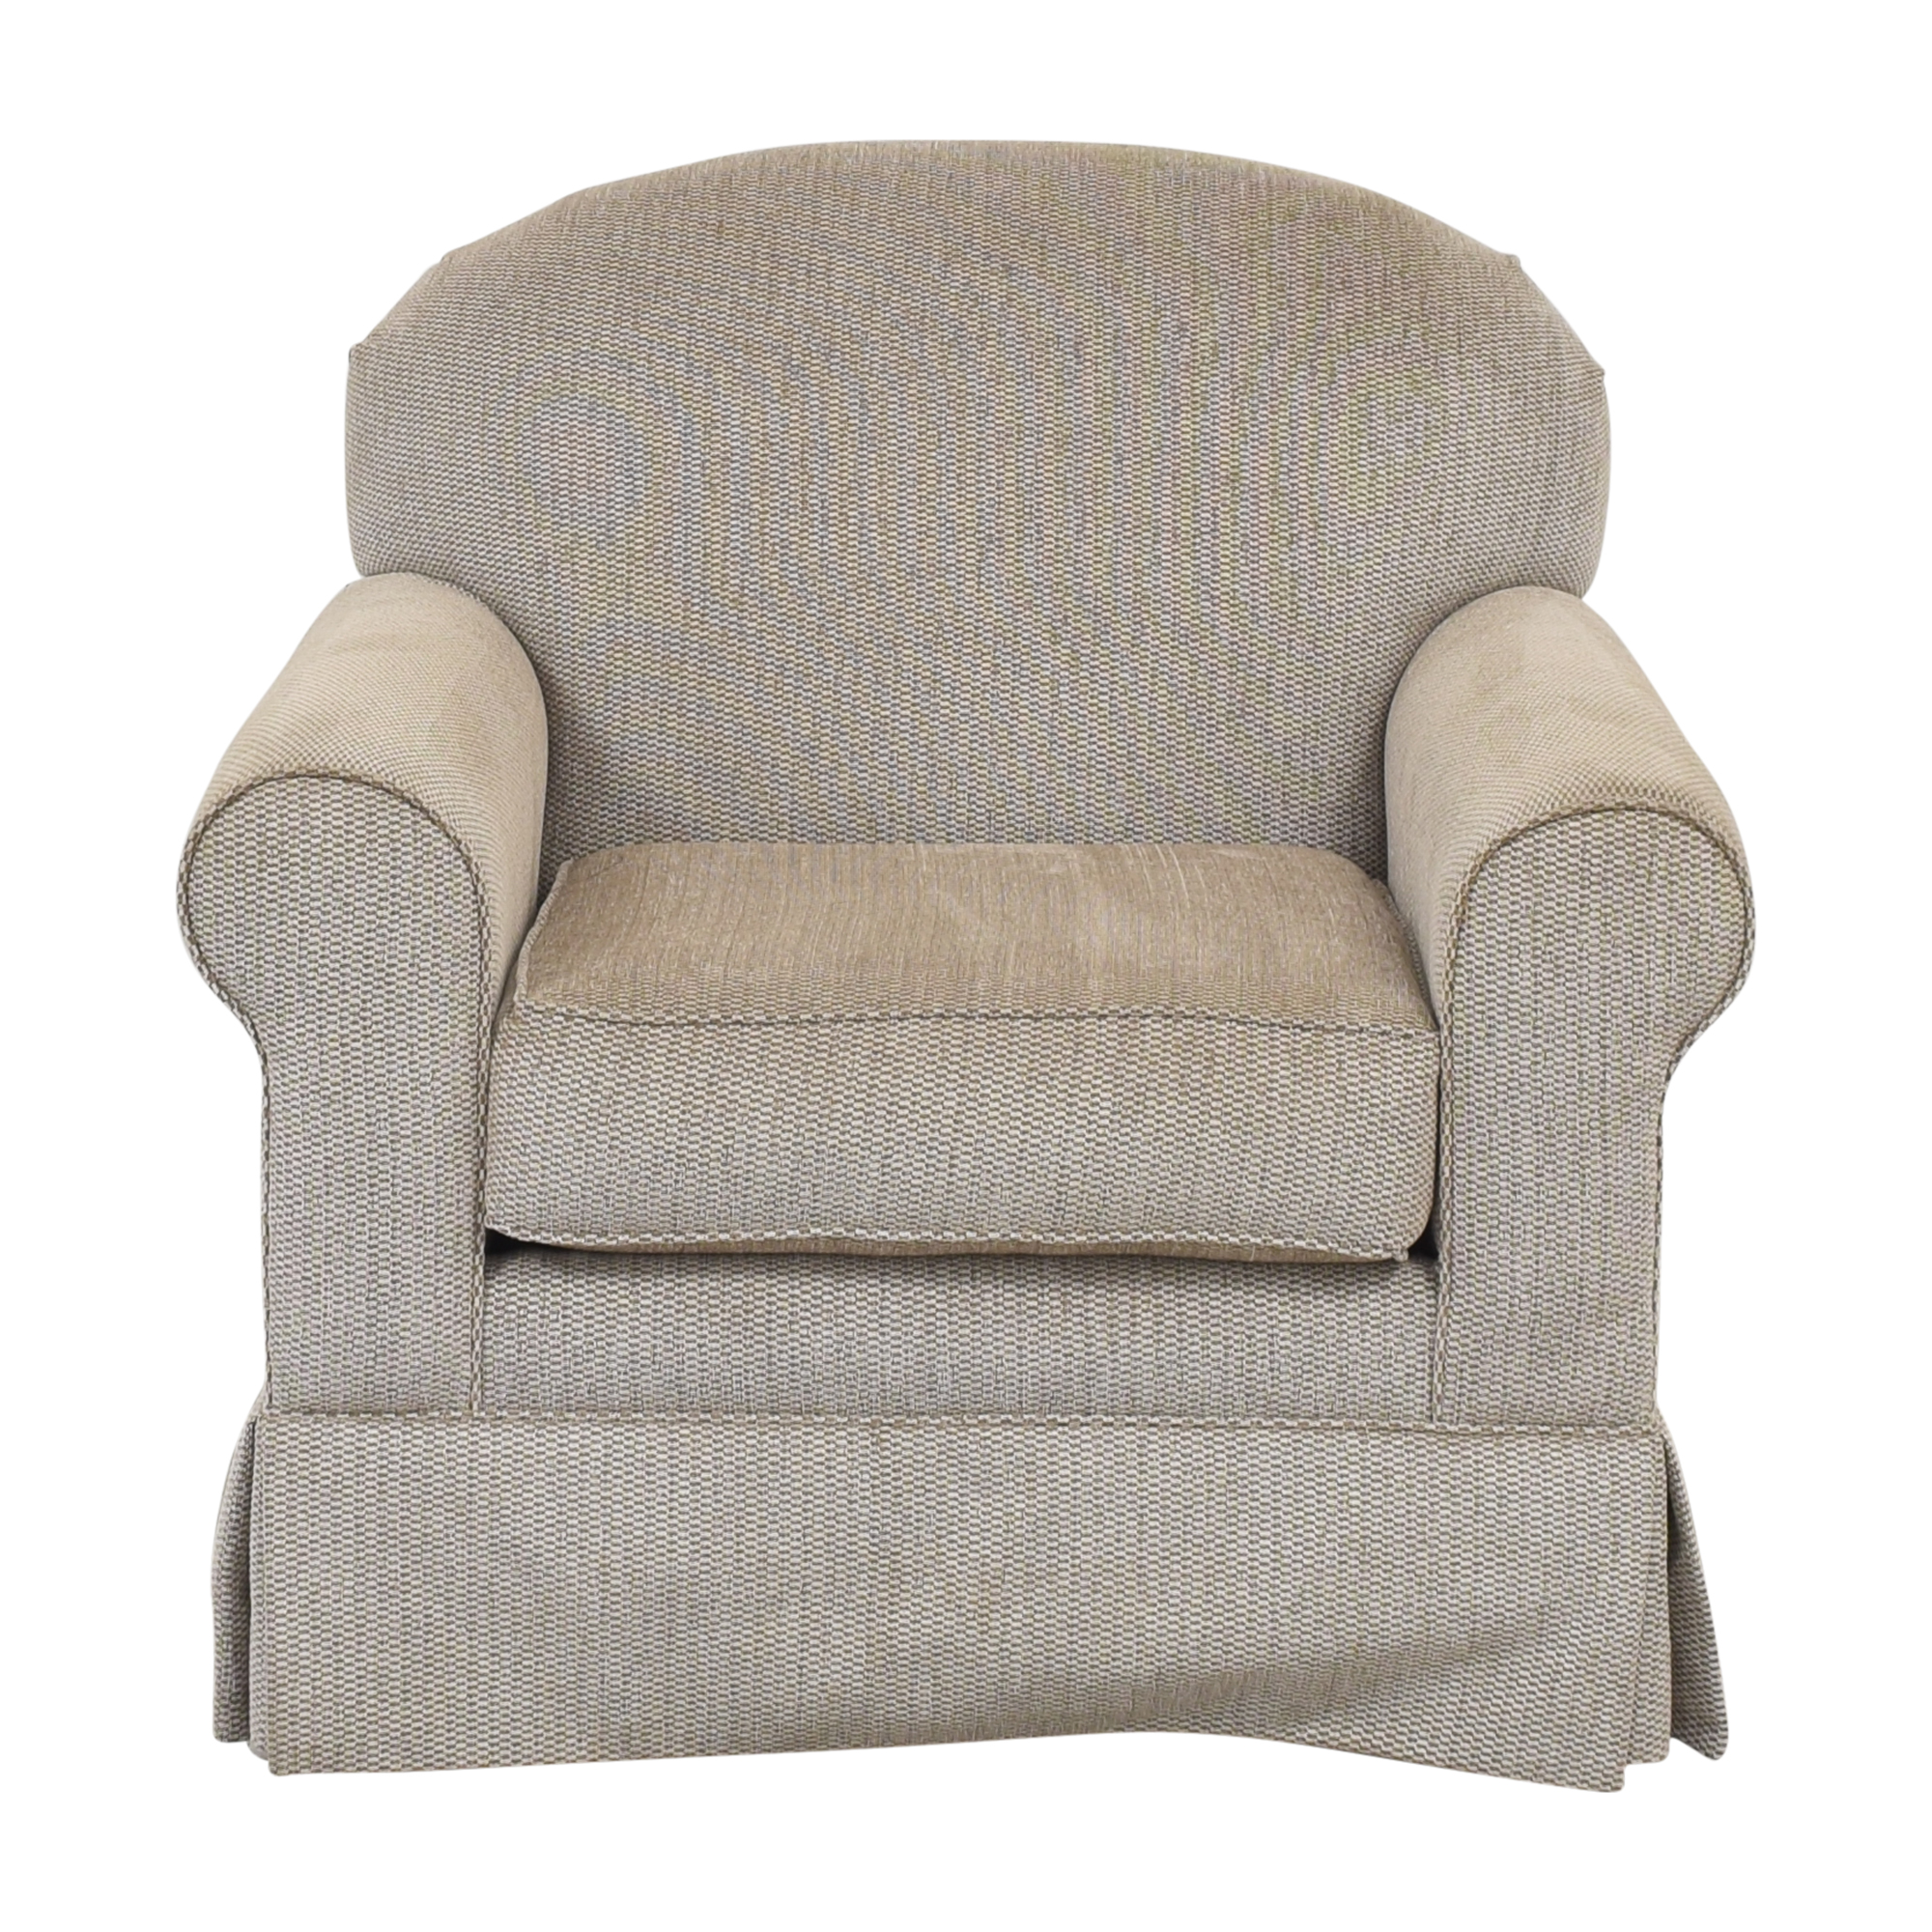 Raymour & Flanigan Armchair sale